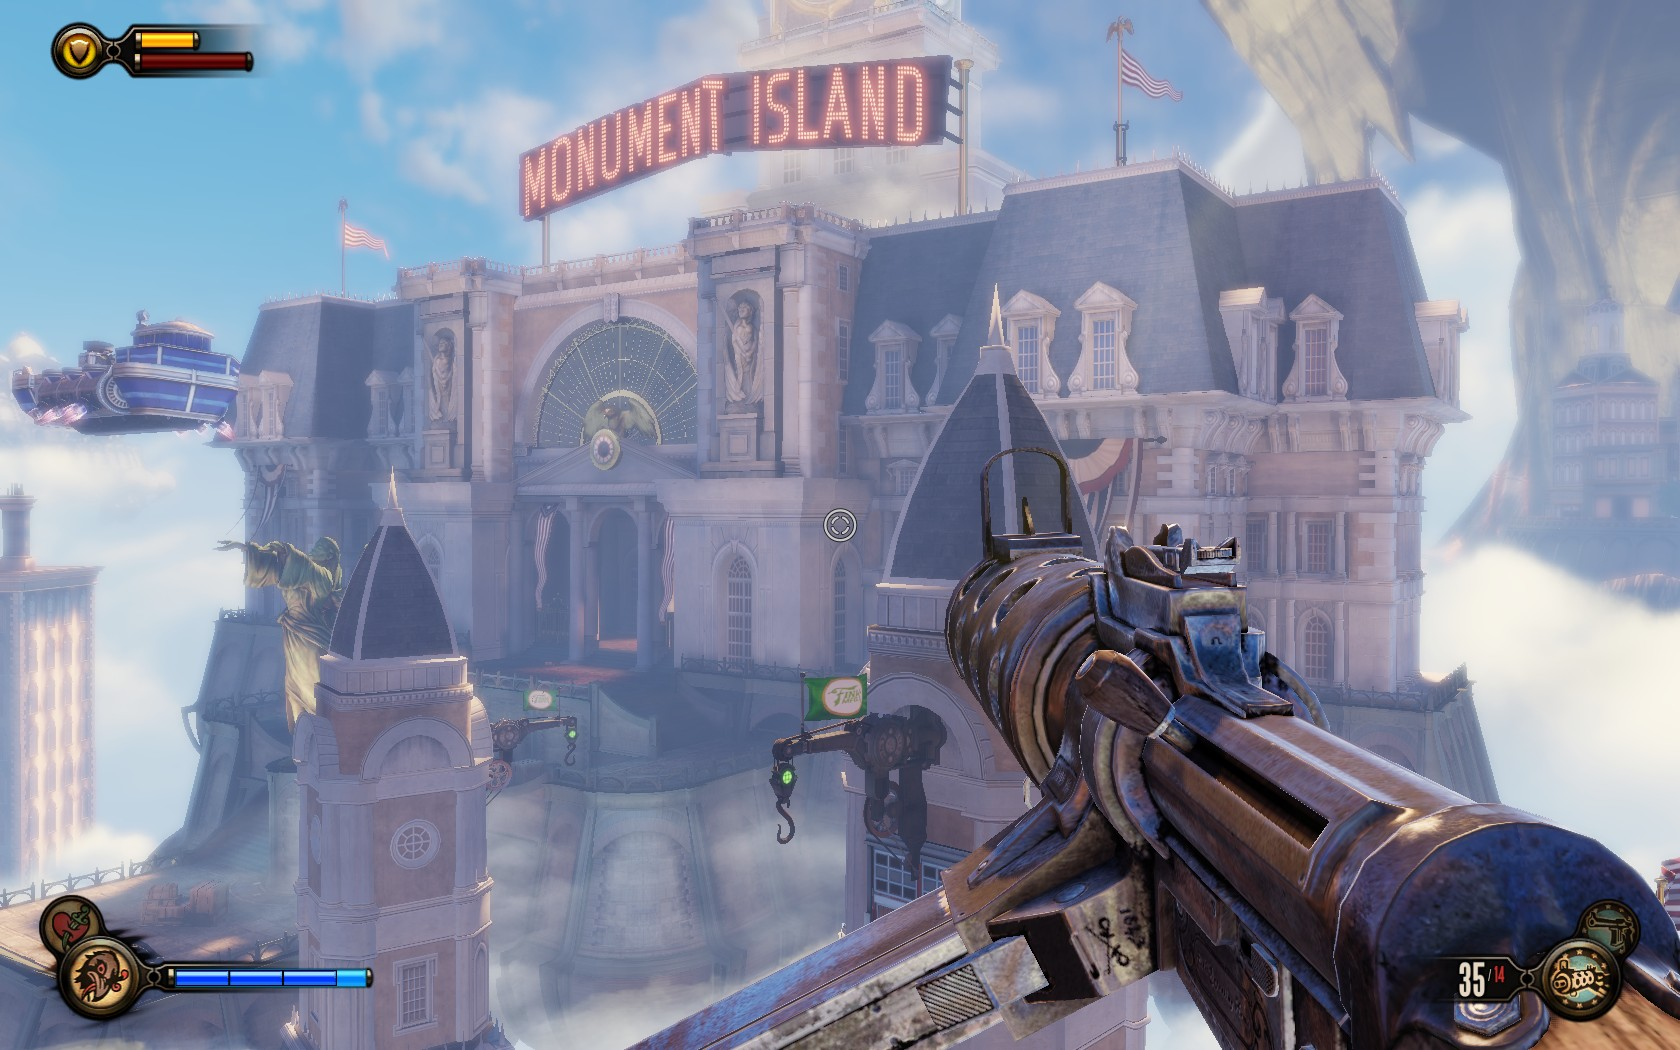 Bioshock Infinite Monument Island Gateway